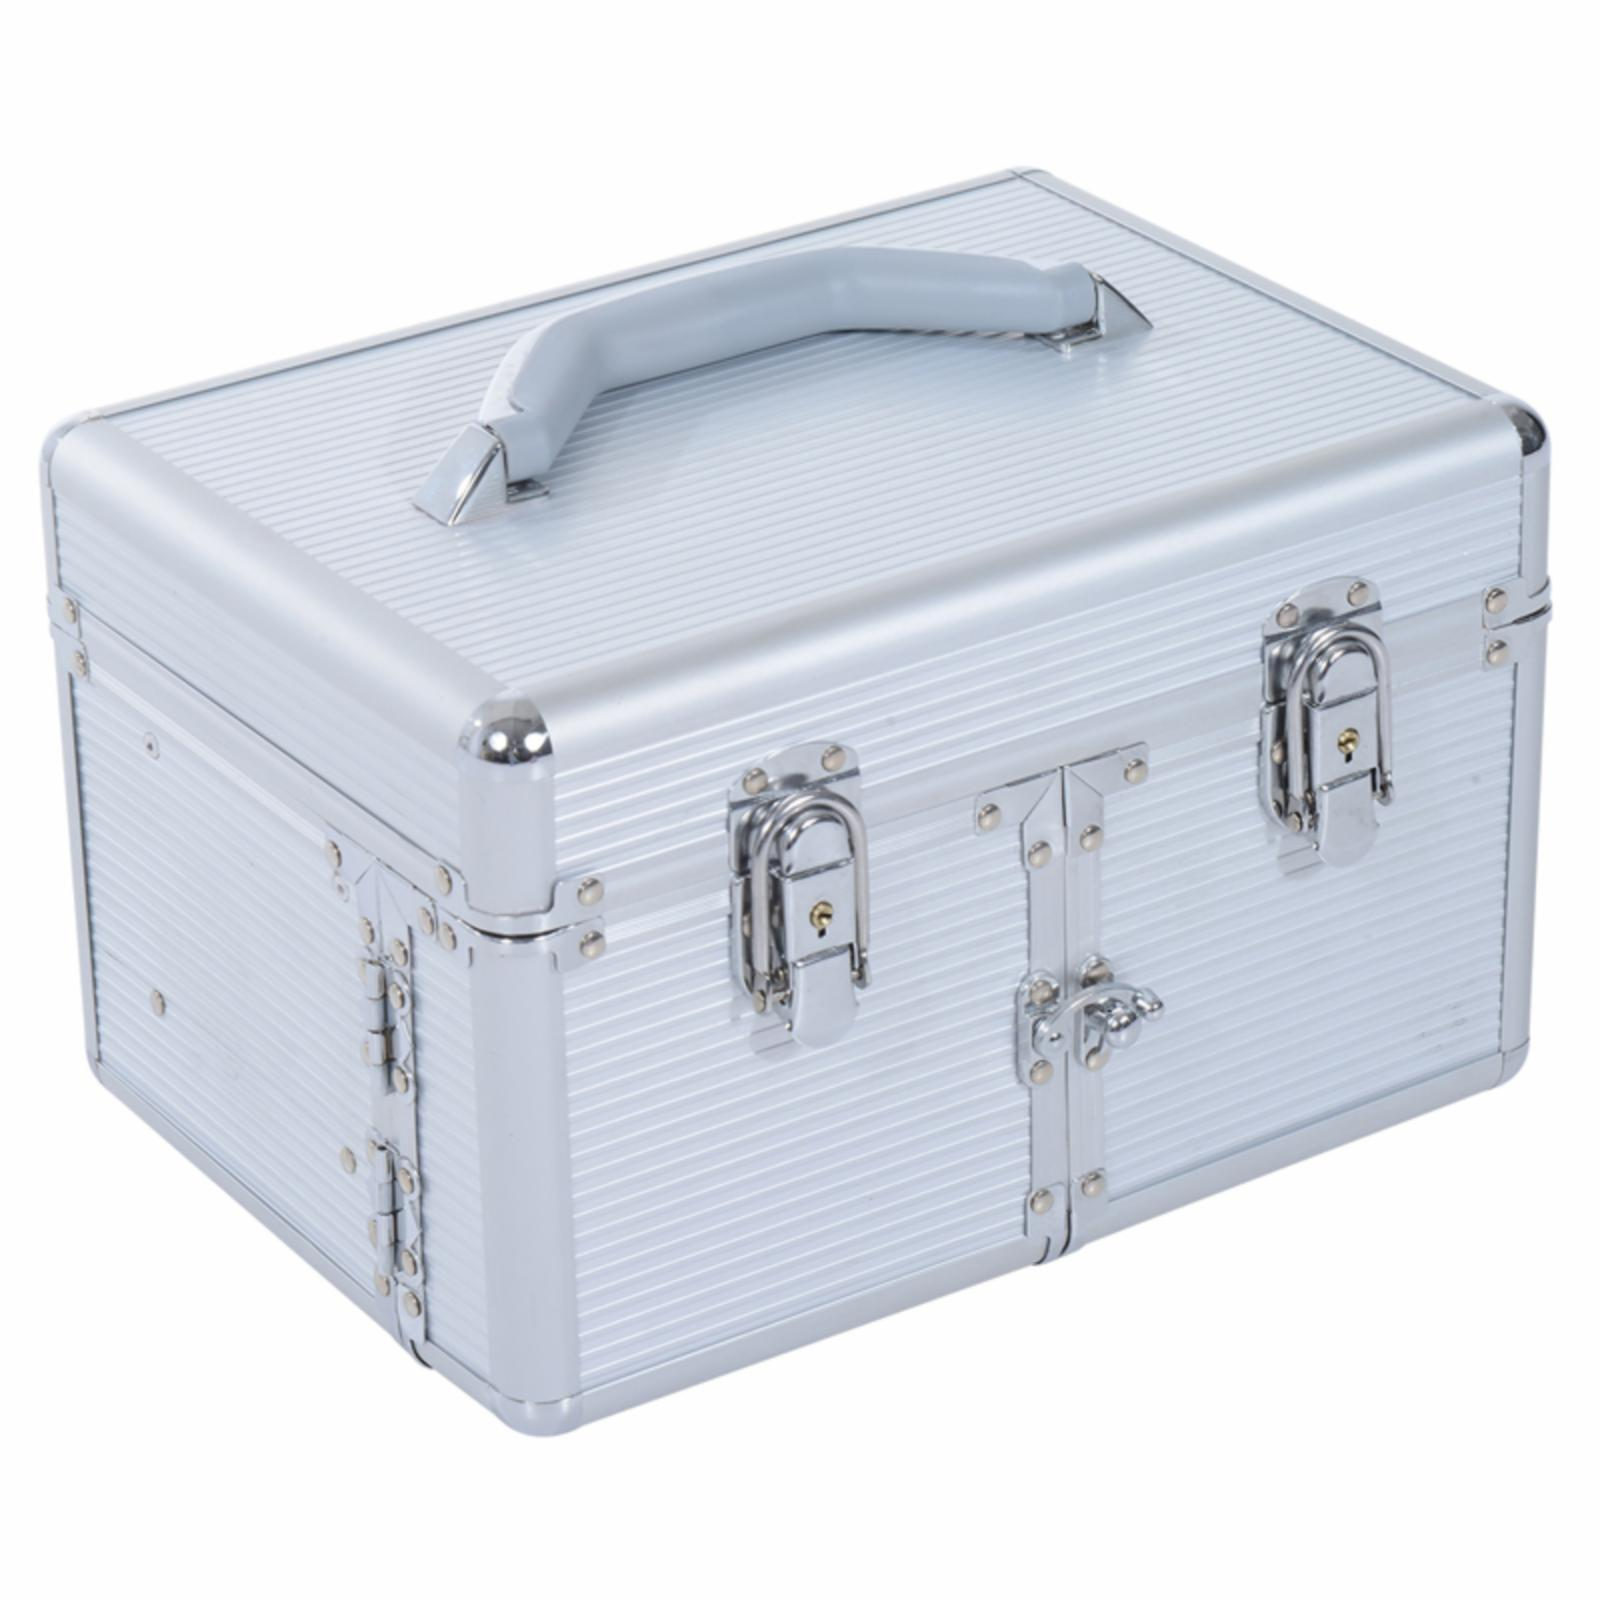 Soozier 3 Tier Lockable Cosmetic Makeup Train Case with E...